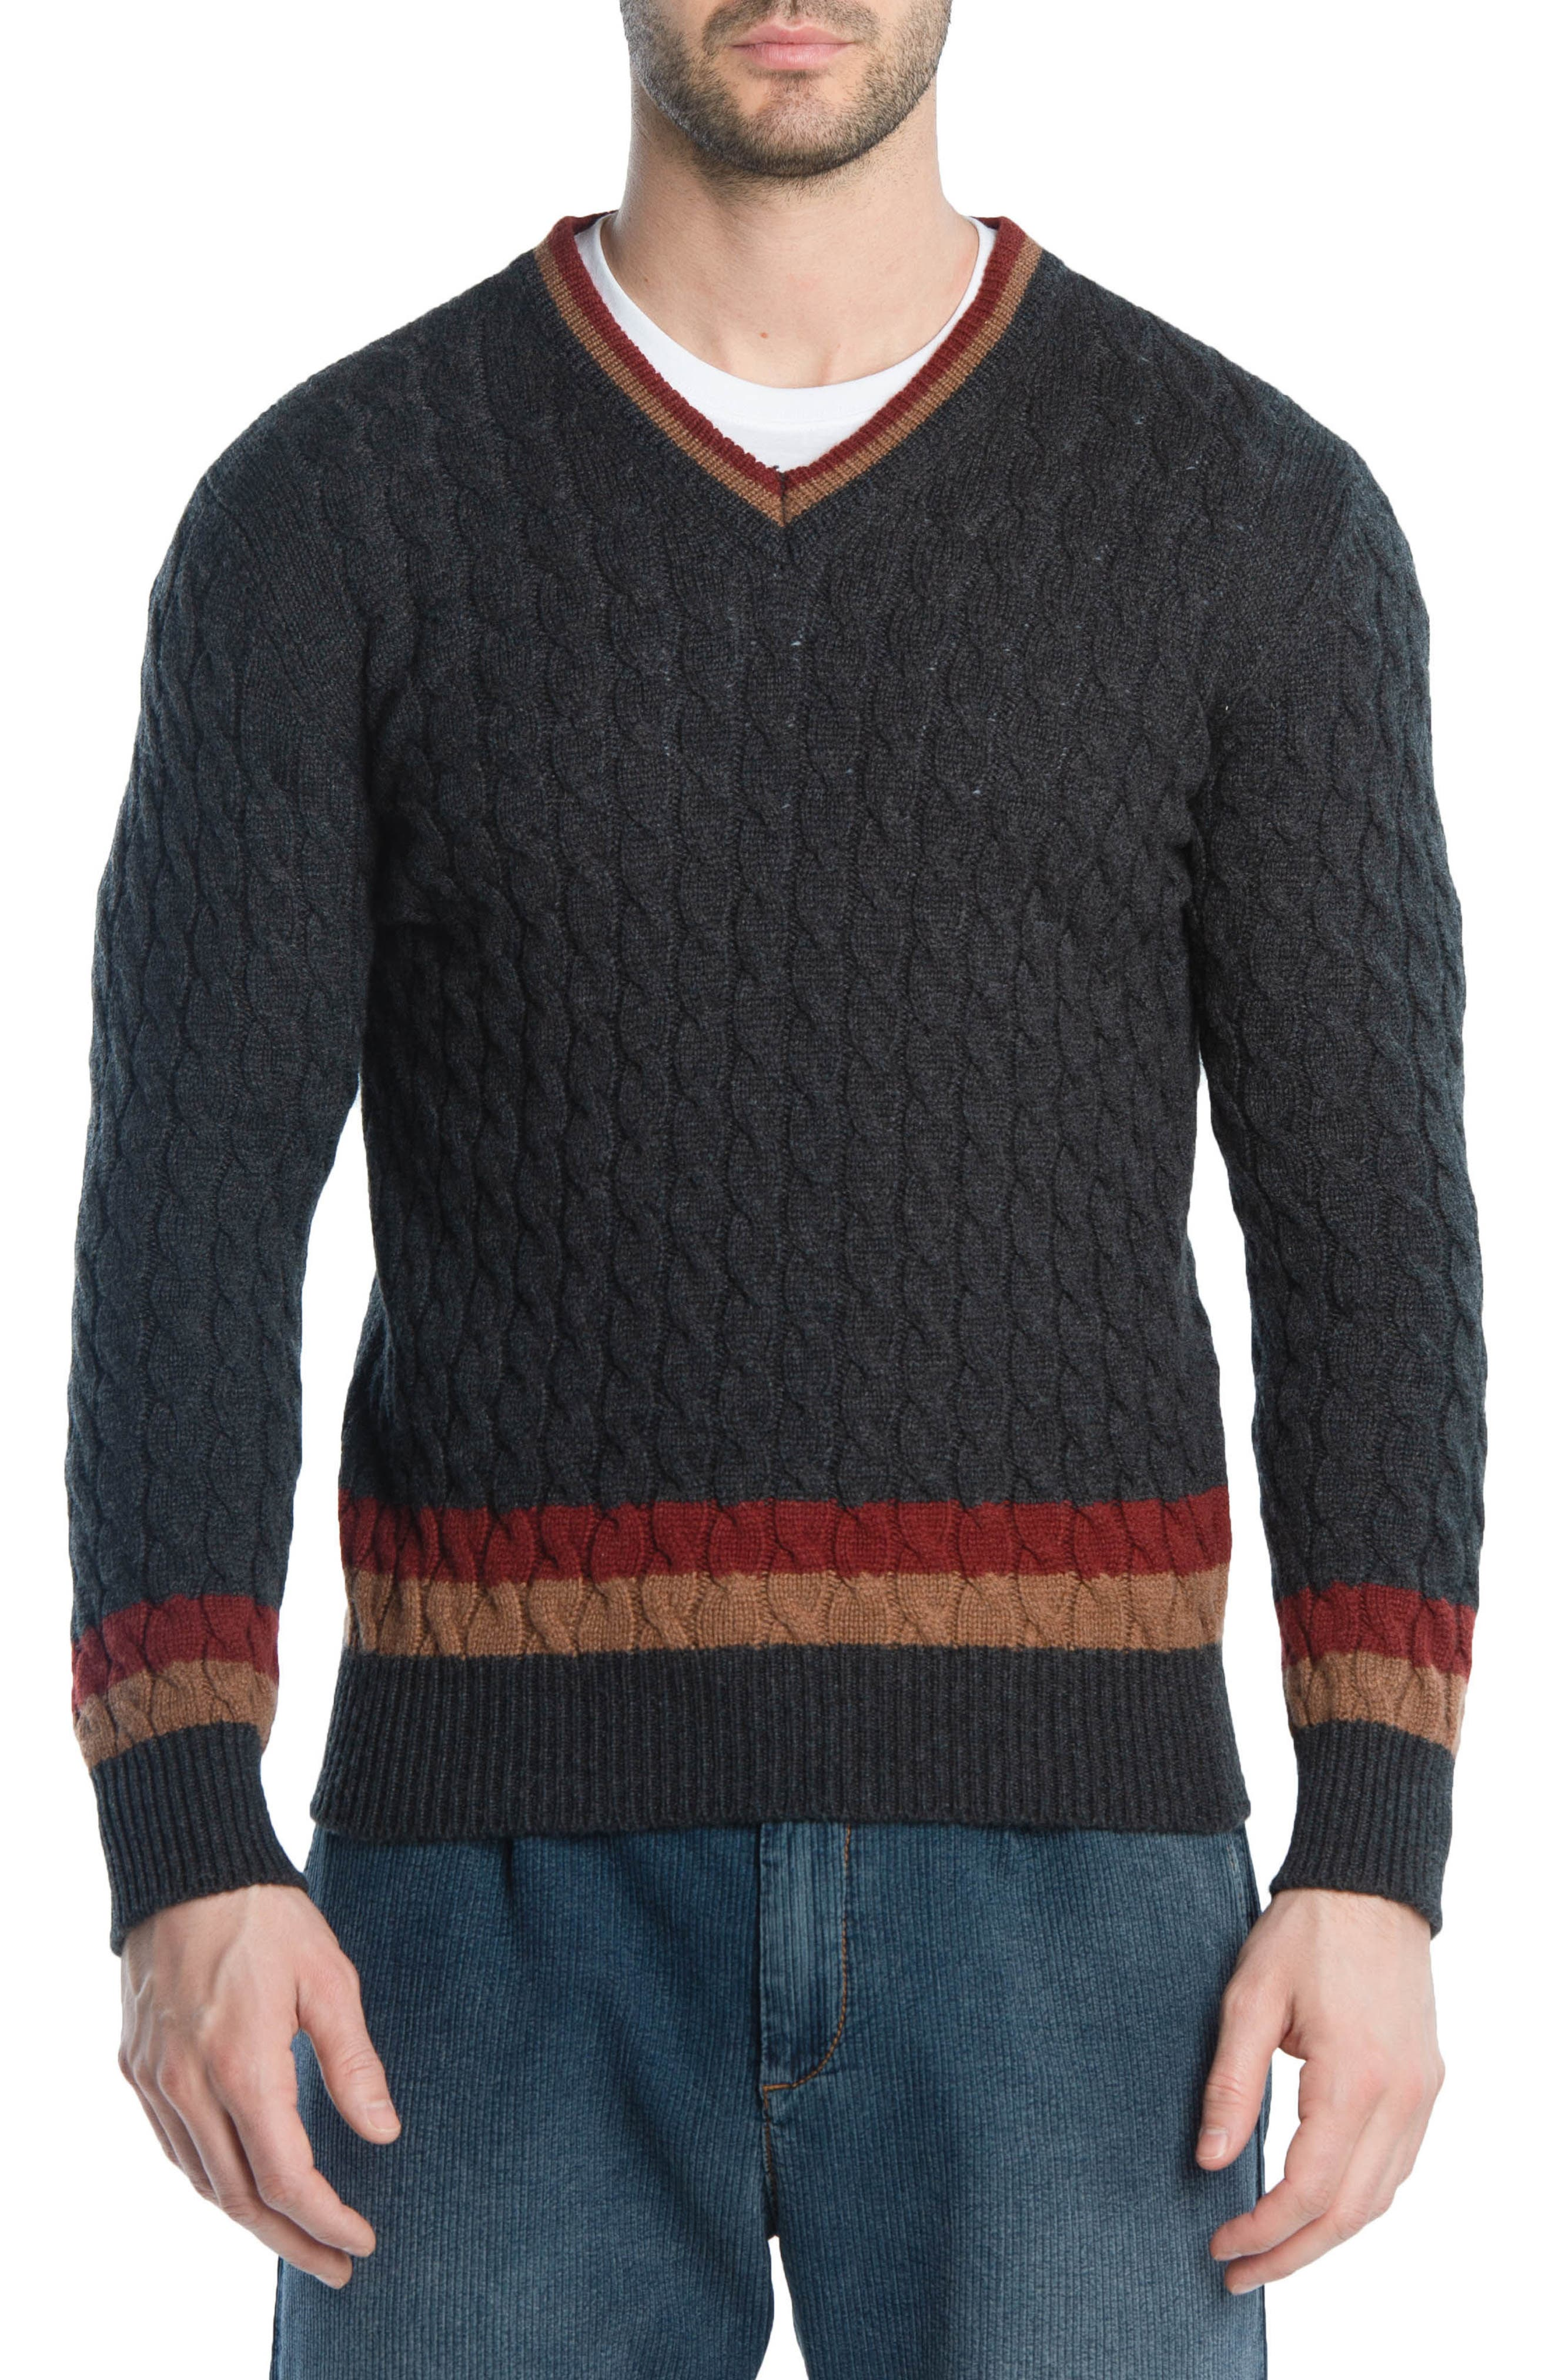 Cableknit Cashmere V-Neck Sweater,                             Main thumbnail 1, color,                             DARK GREY